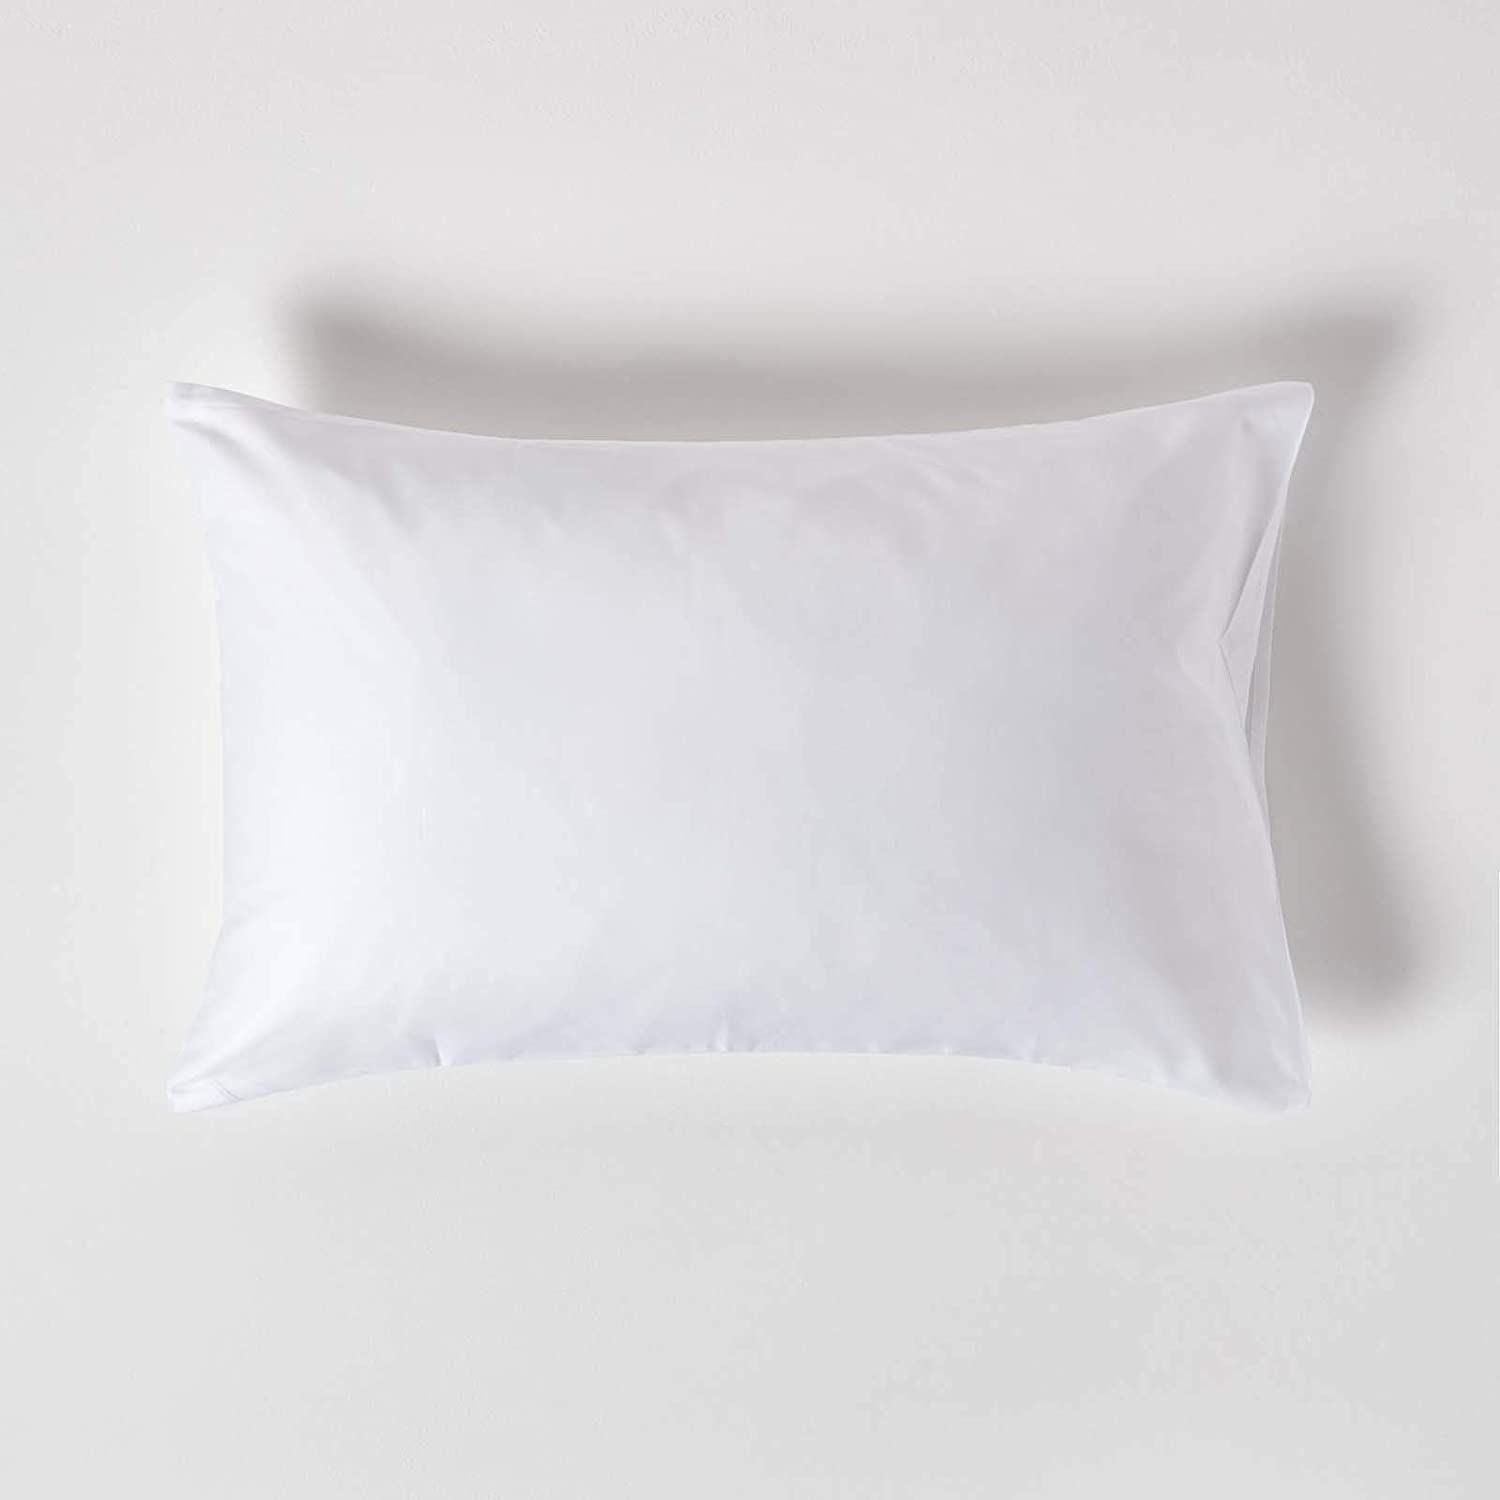 HOMESCAPES White Organic Cotton Pillowcase Standard Size 600 Thread Count Percale Equiv Housewife Pillow Case